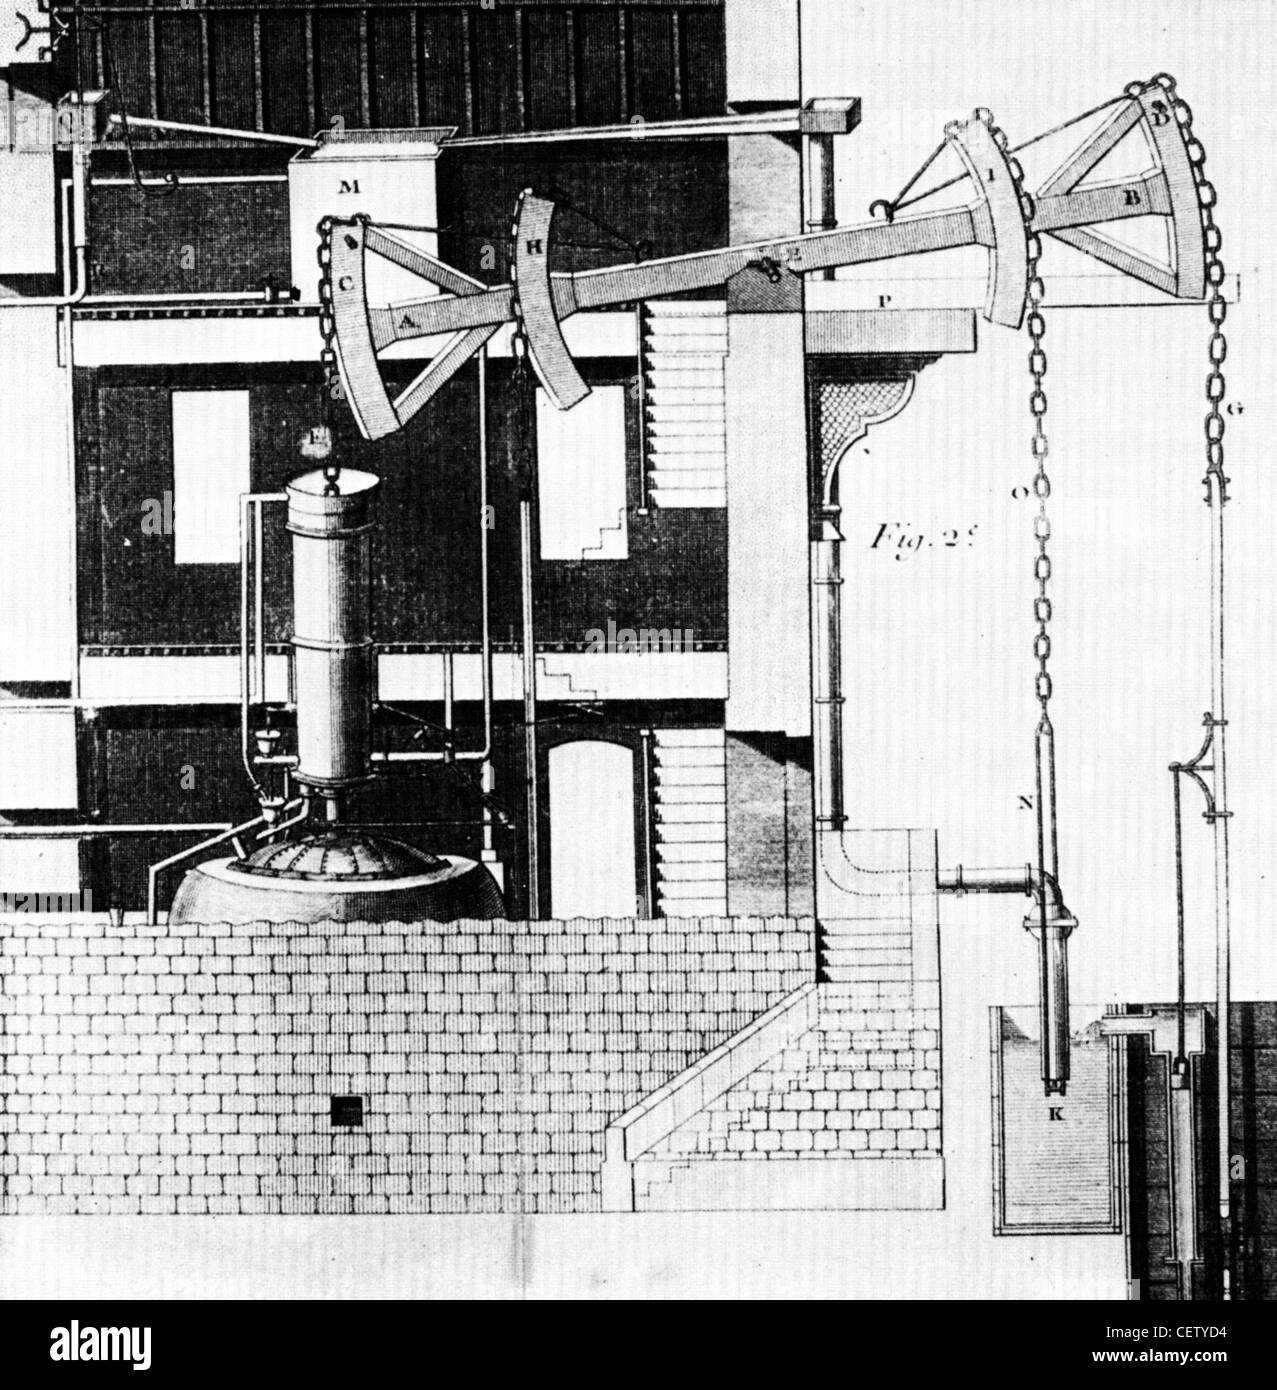 Steam Engine Diagram Stock Photos Of Newcomen Invented By Thomas In 1712 Image